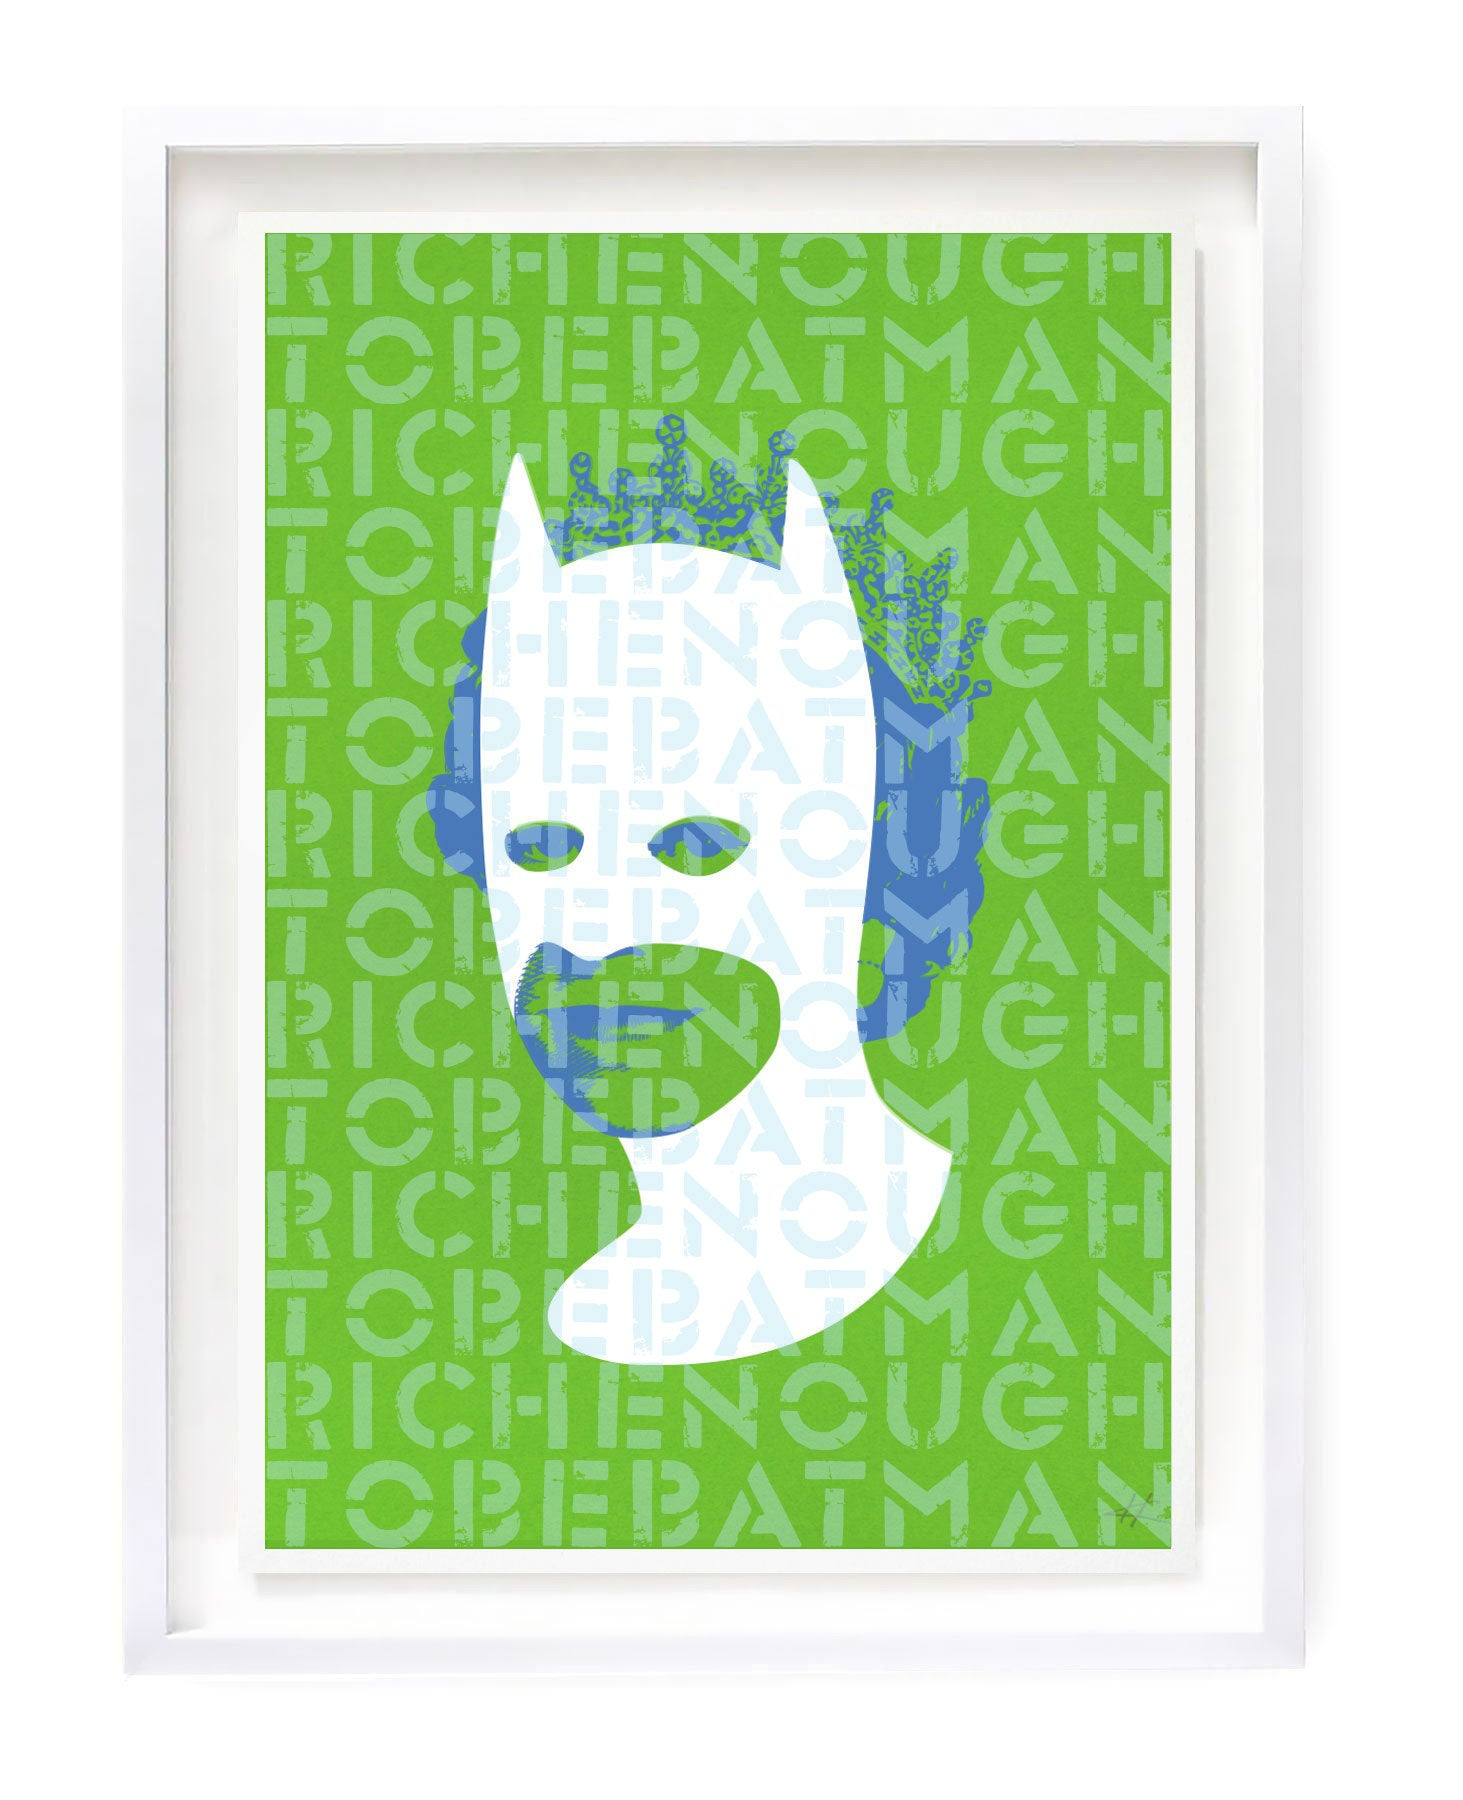 Rich Enough to be Batman - Green Words Over A3